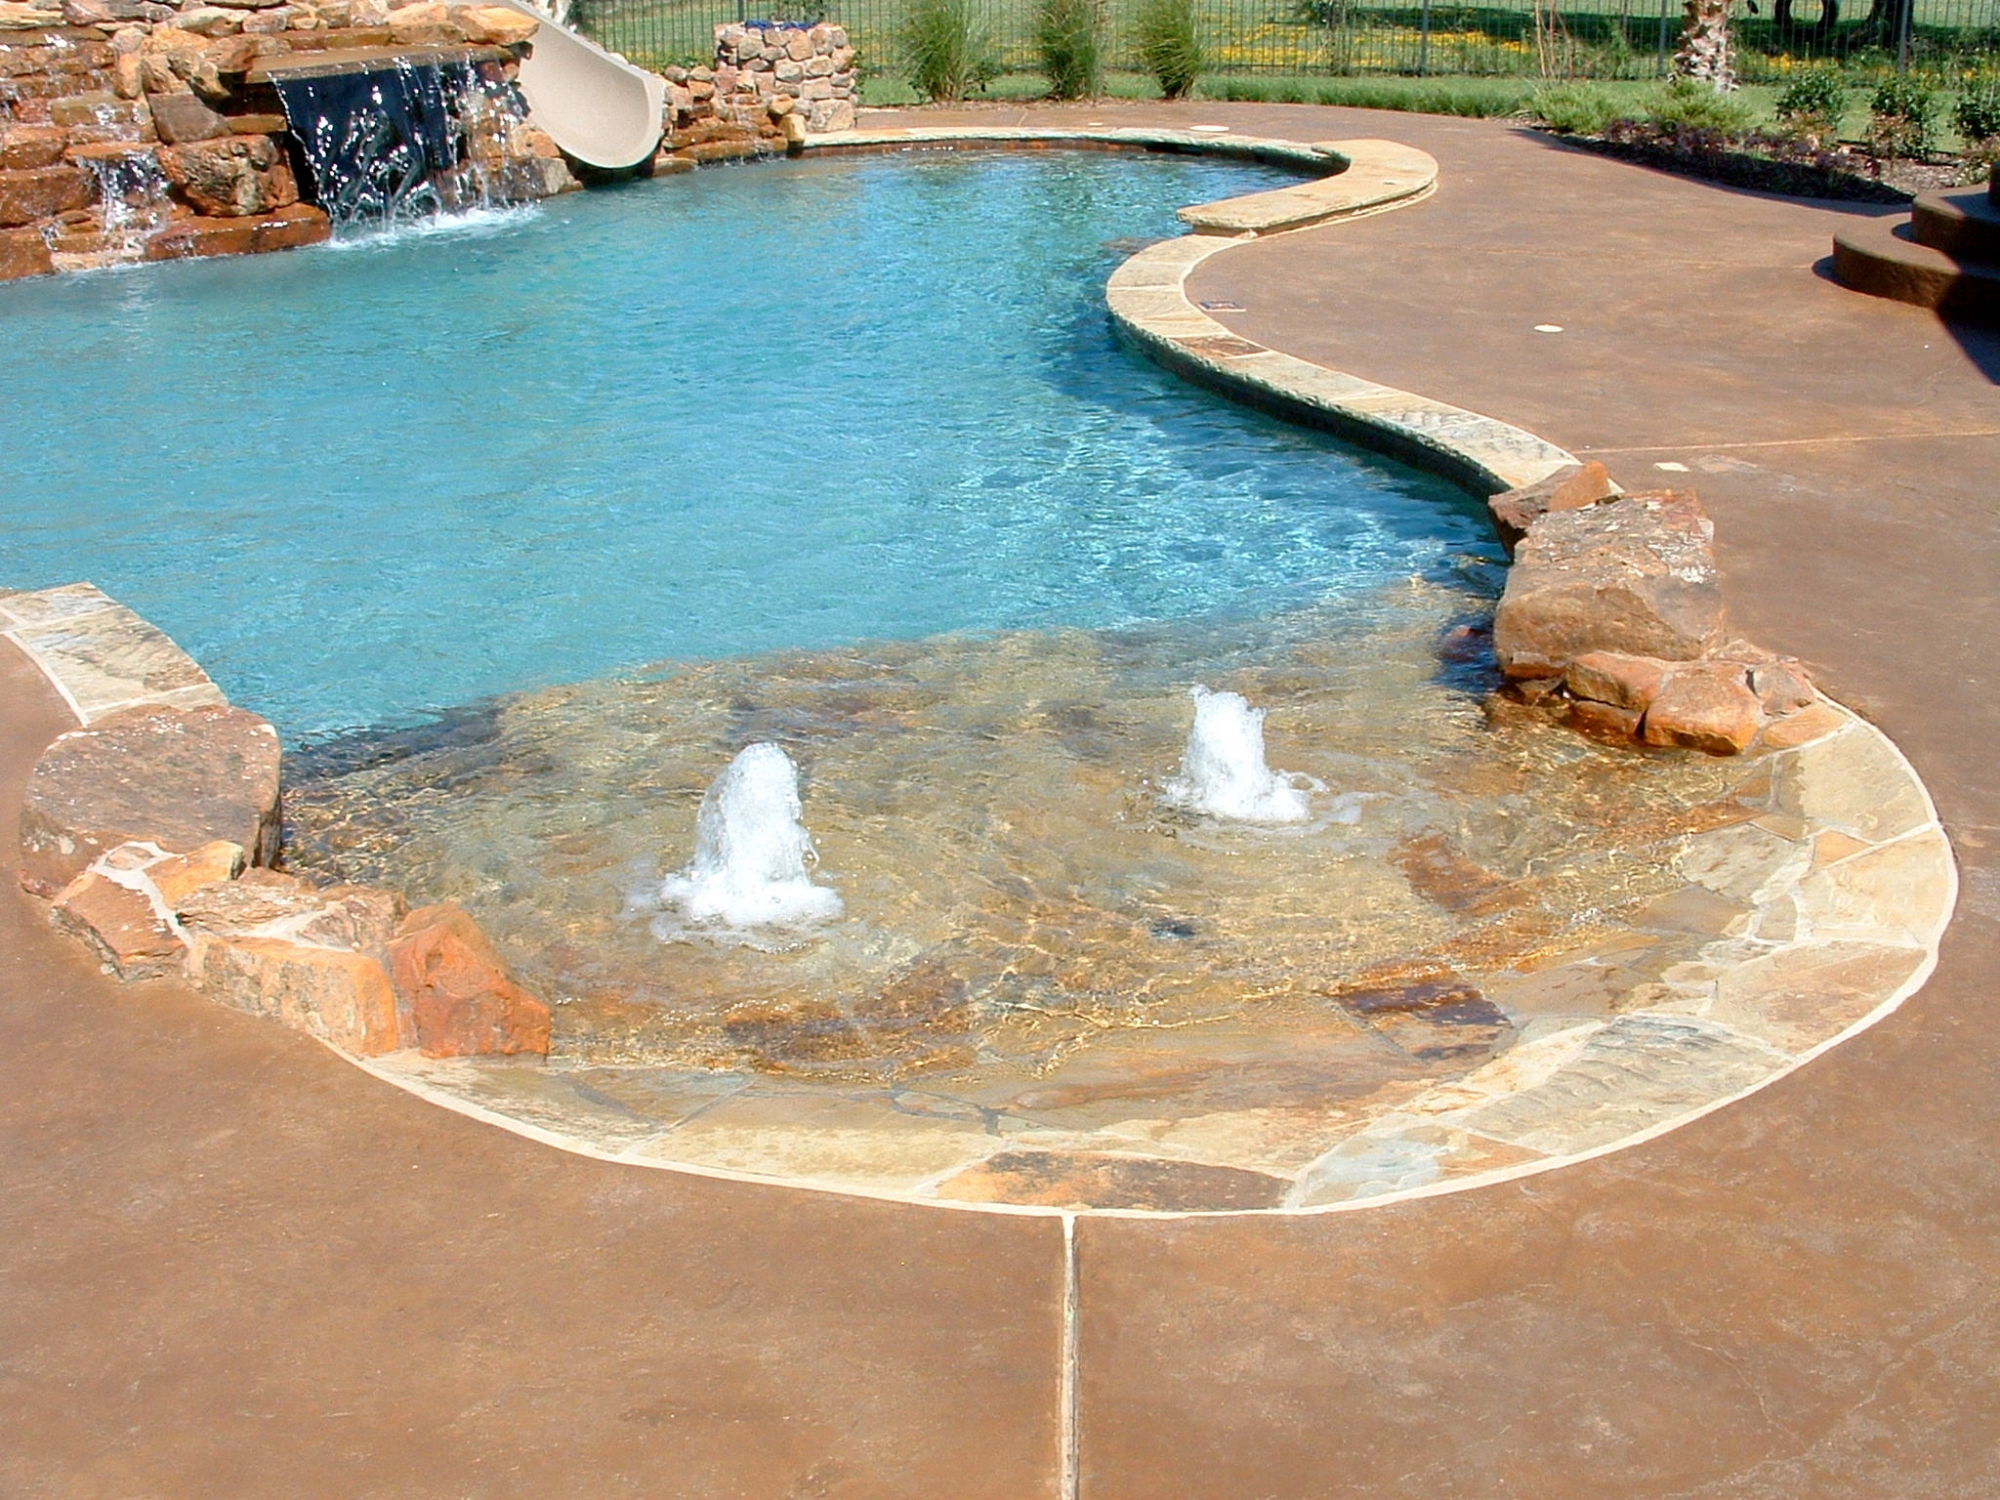 Pools gallery - Beach entry swimming pool designs ...